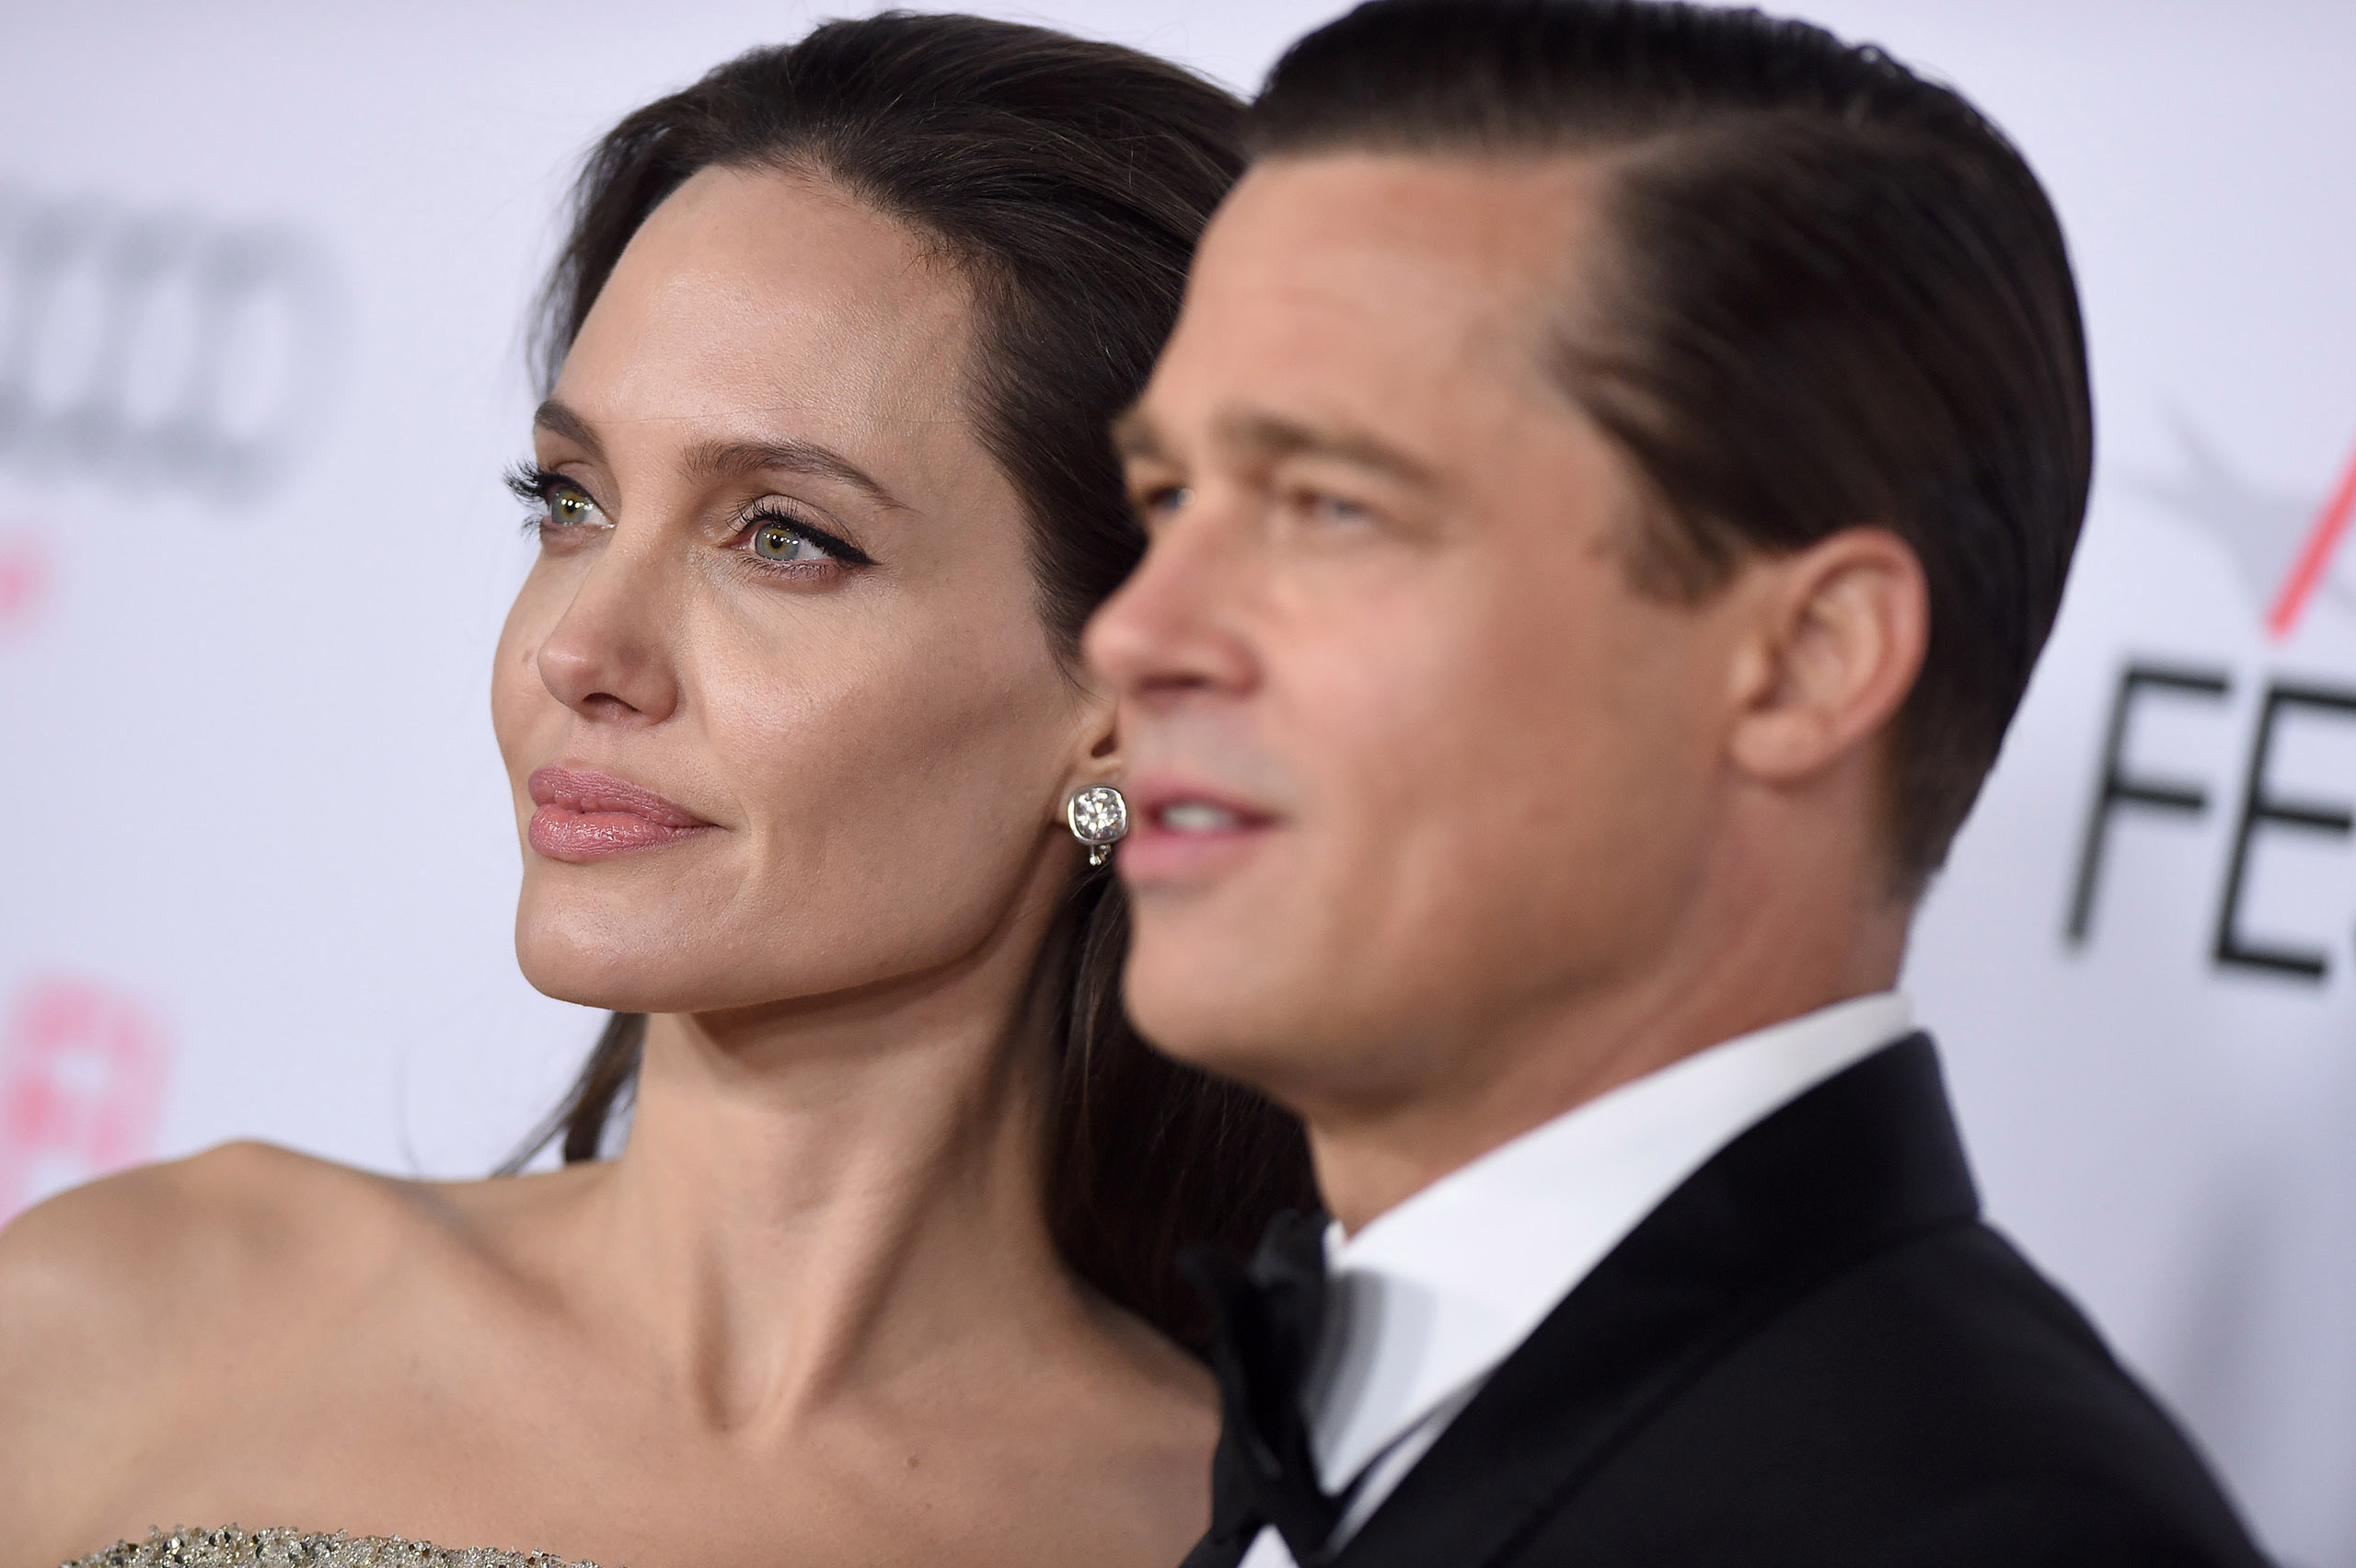 Angelina Jolie and Brad Pitt arrive at the AFI FEST 2015 Opening Night Gala Premiere of Universal Pictures' 'By The Sea' in Hollywood, Calif. on Nov. 5, 2015.